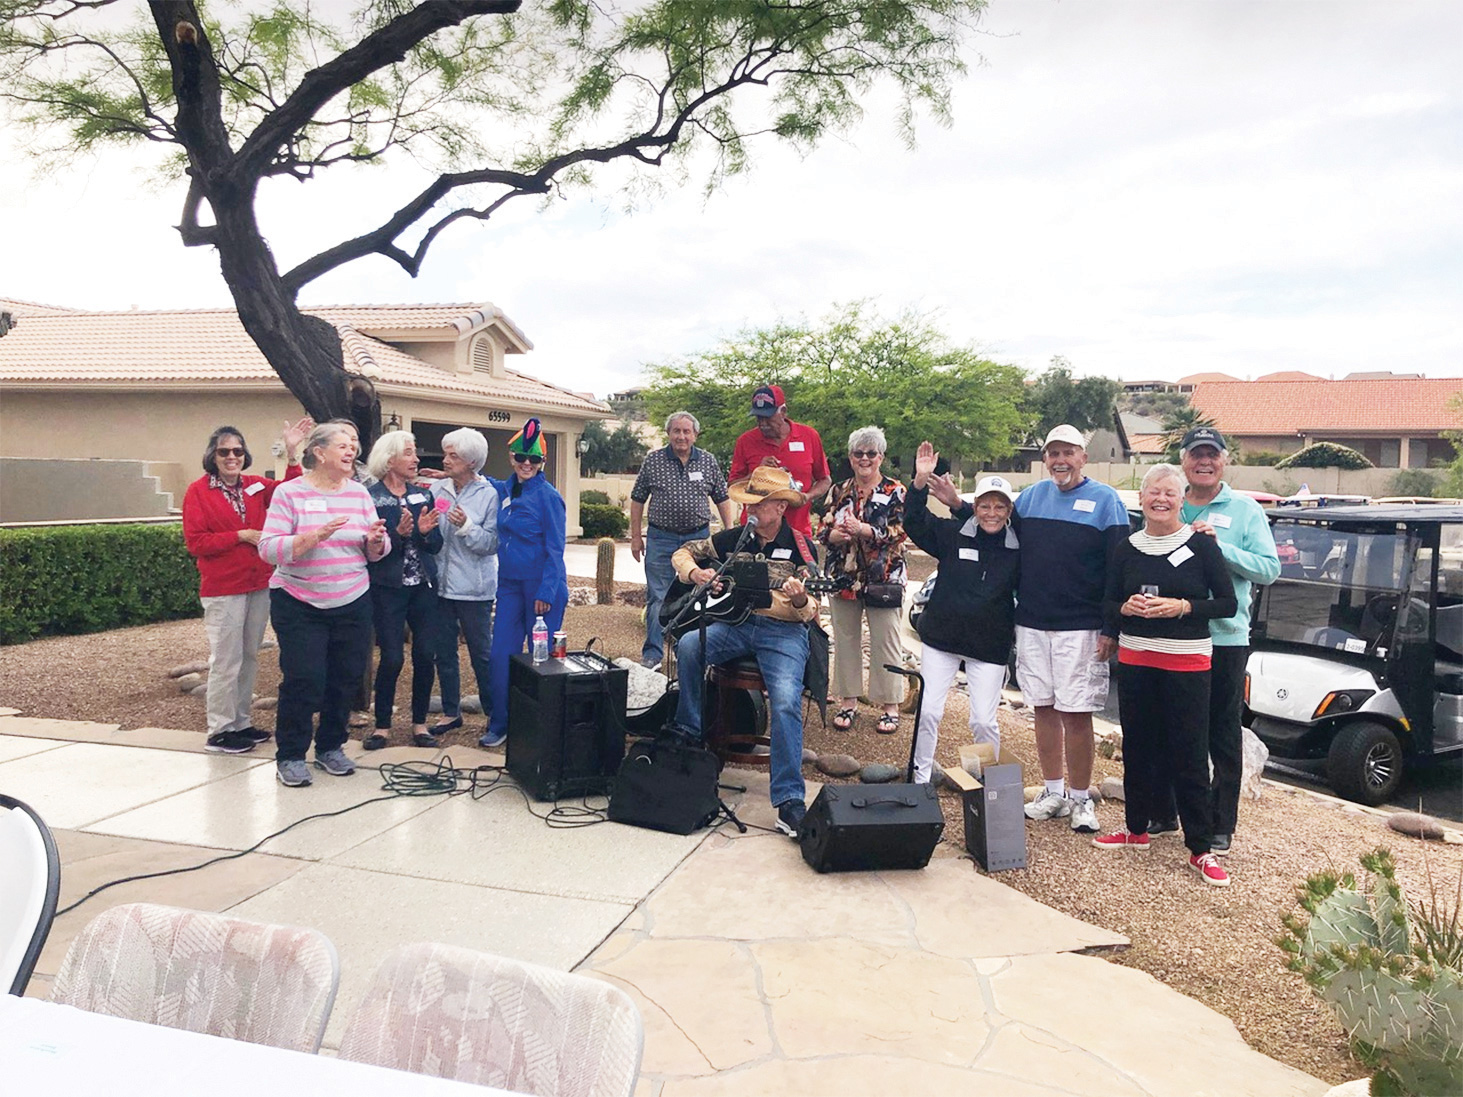 Ninety-nine residents of Unit 17 gathered in two driveways to partake of homemade chili, slaw, cornbread, and cookies from the Stoney Flower Bakers.